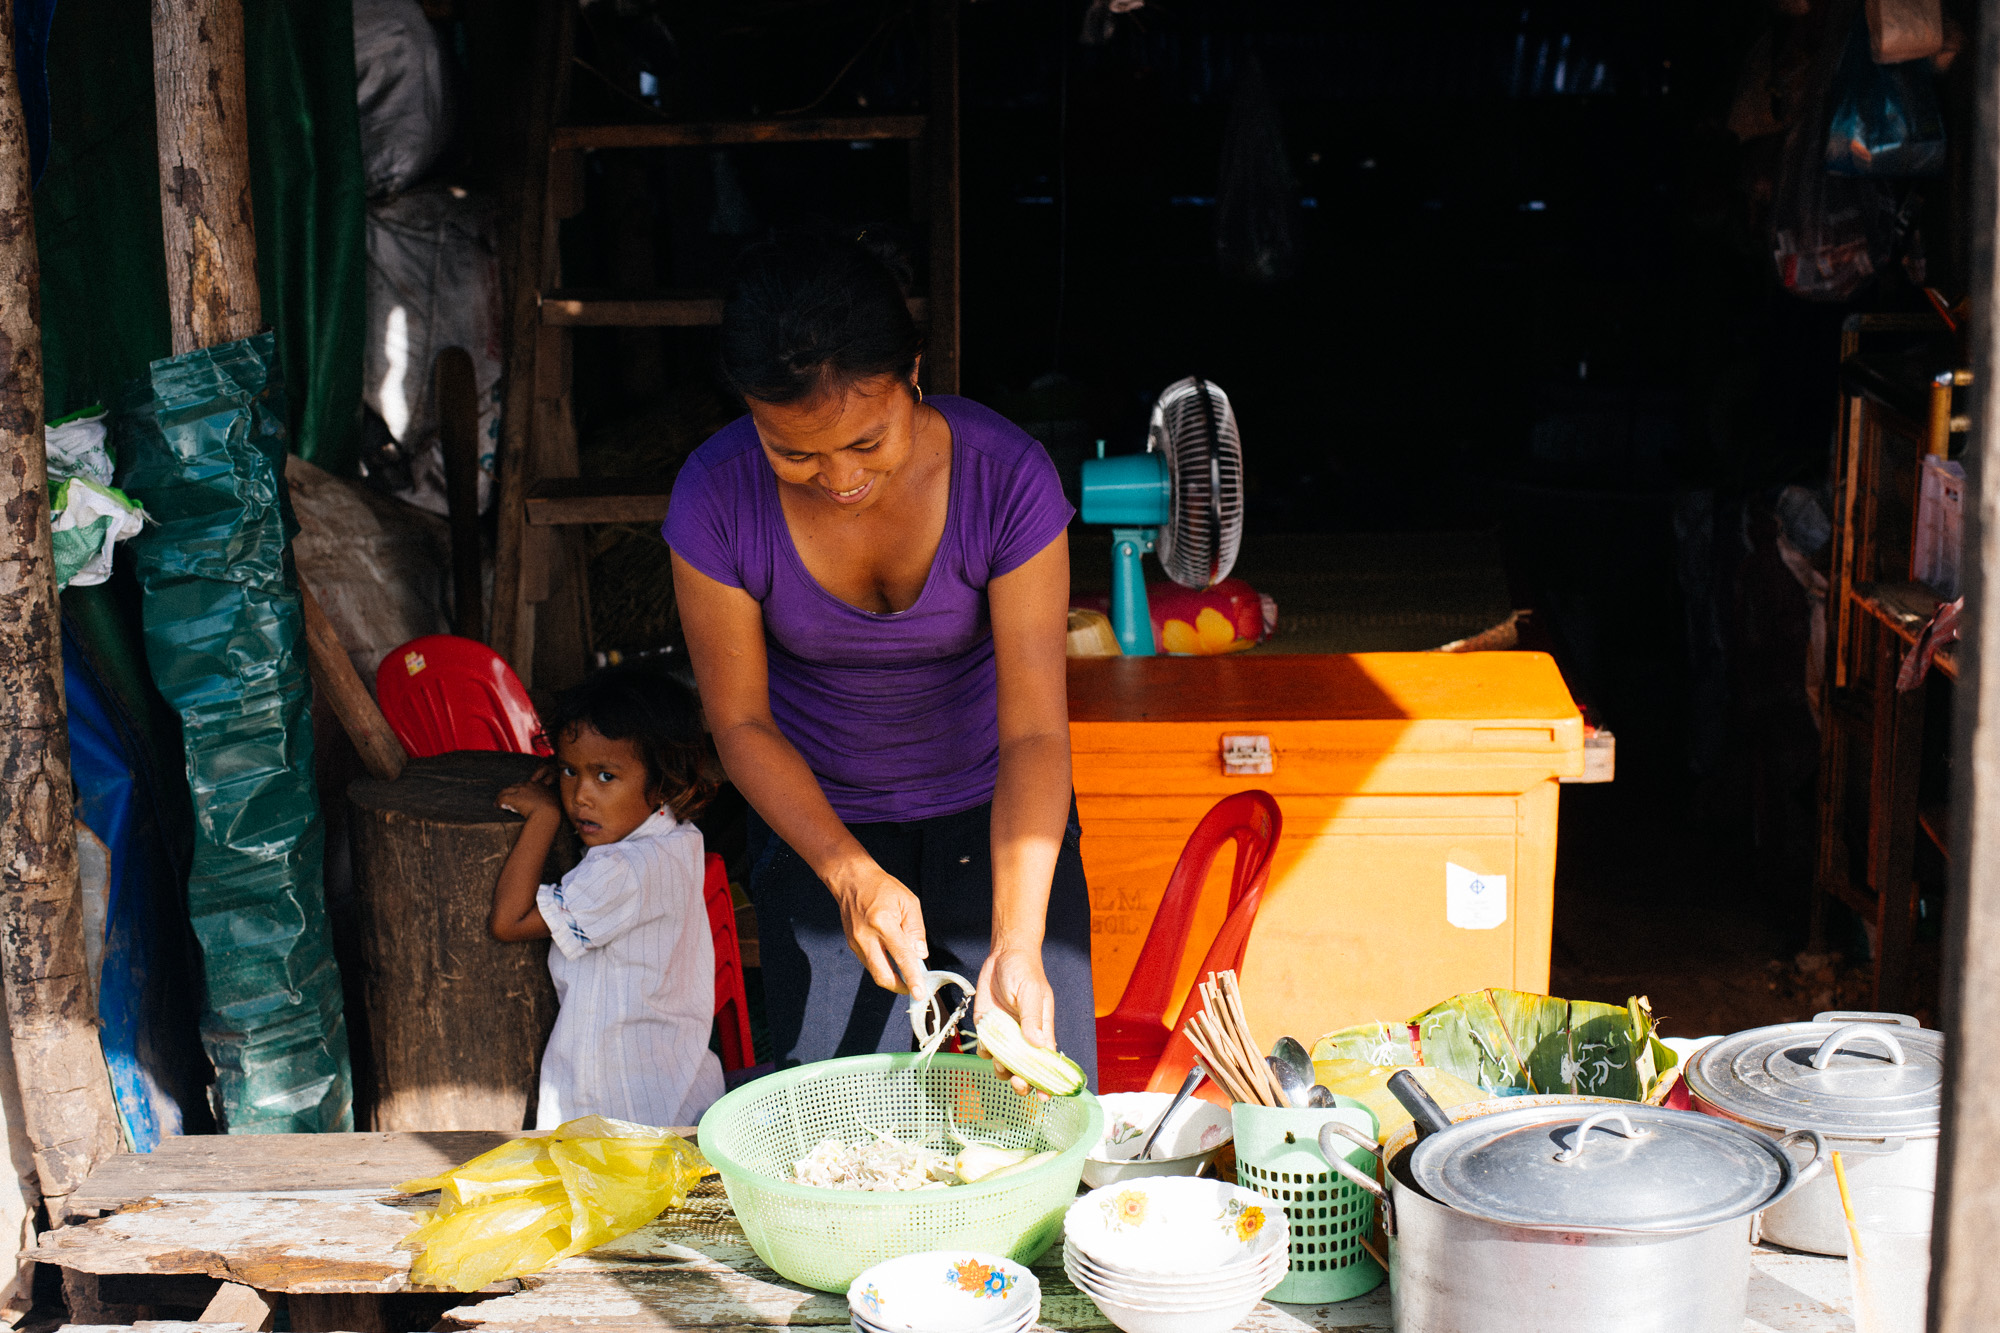 Girl hides behind woman cooking food to sell. Some people would stop by on their scooters to buy food and take home.